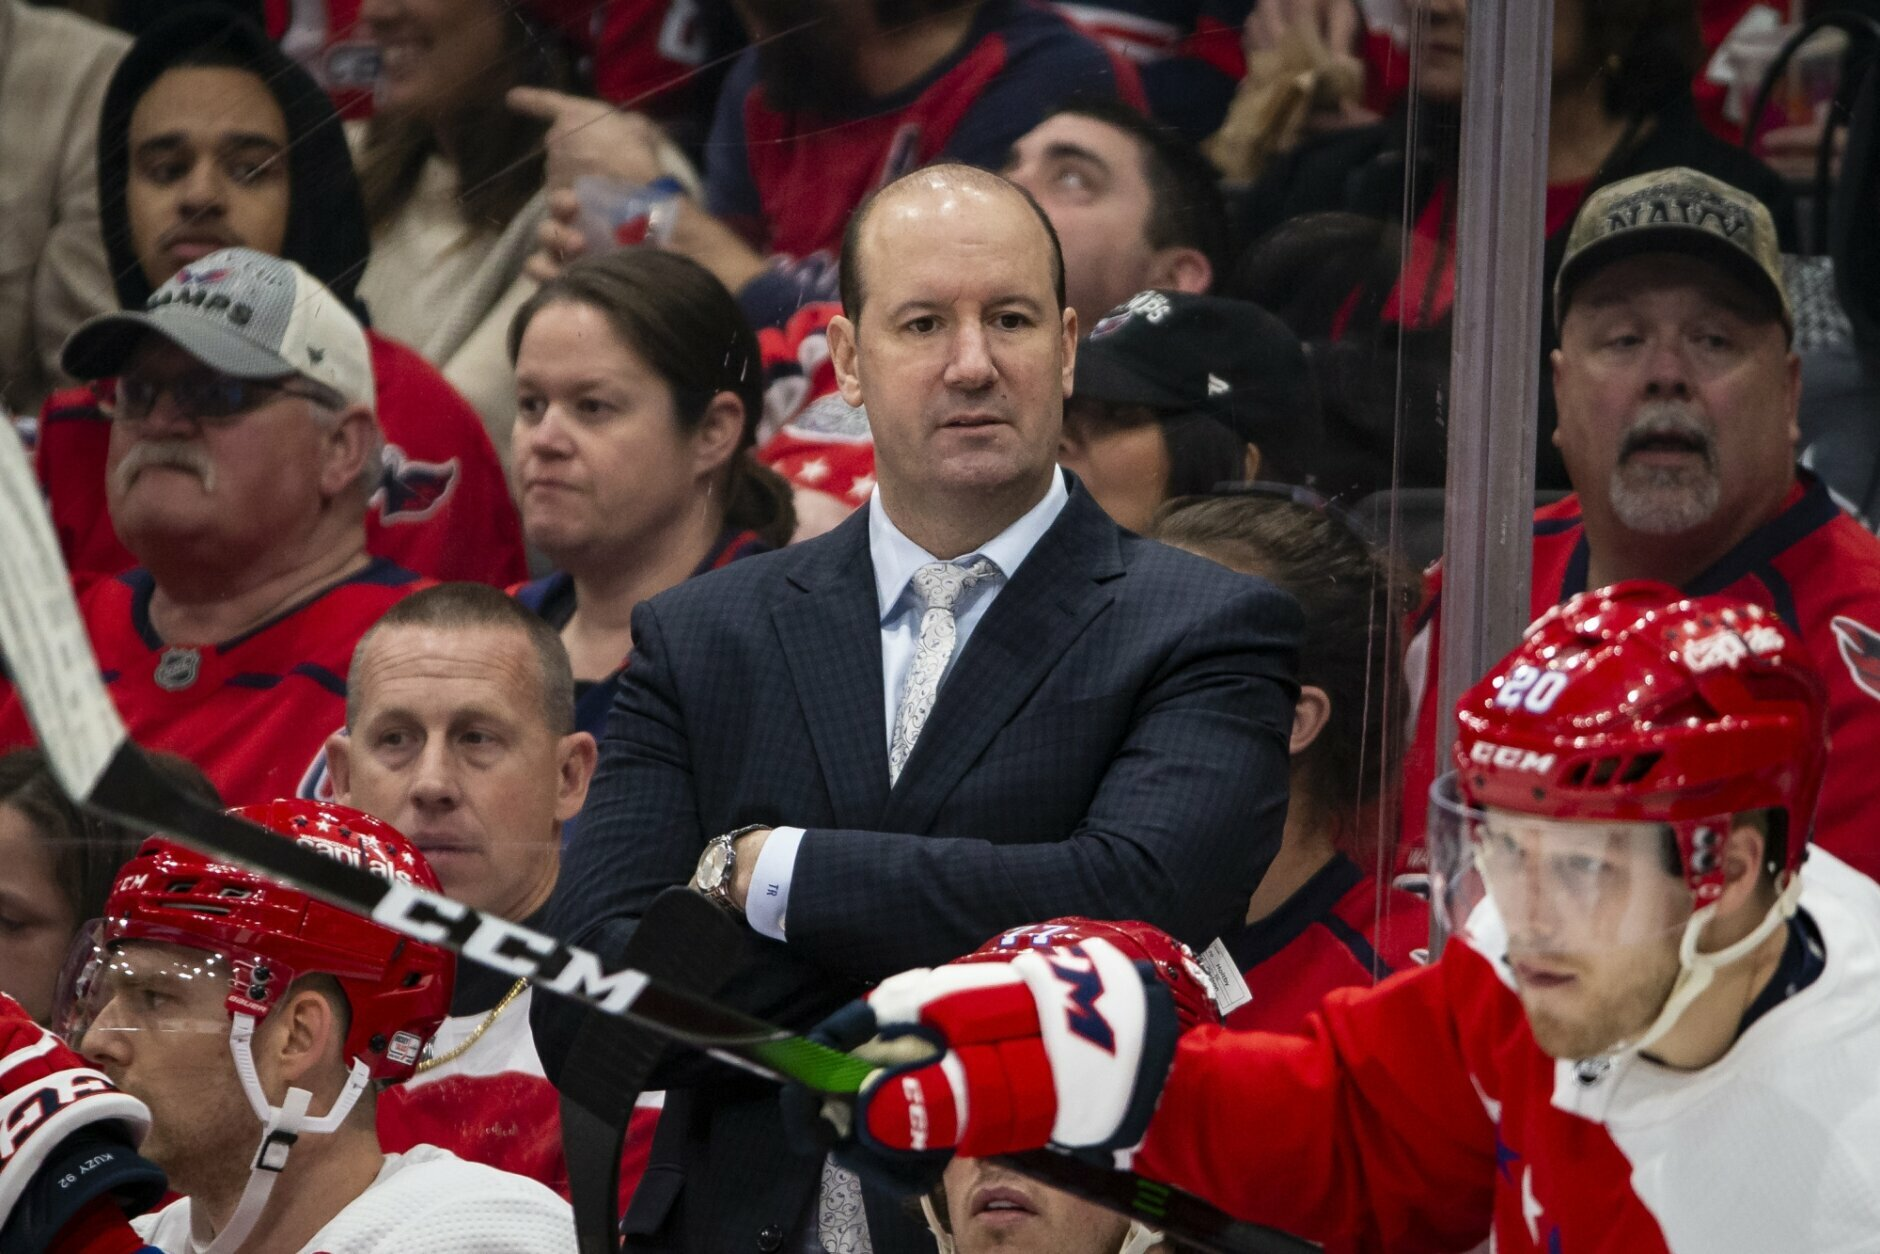 Washington Capitals head coach Todd Reirden watches during the second period of an NHL hockey game against the New Jersey Devils, Thursday, Jan. 16, 2020, in Washington. (AP Photo/Al Drago)